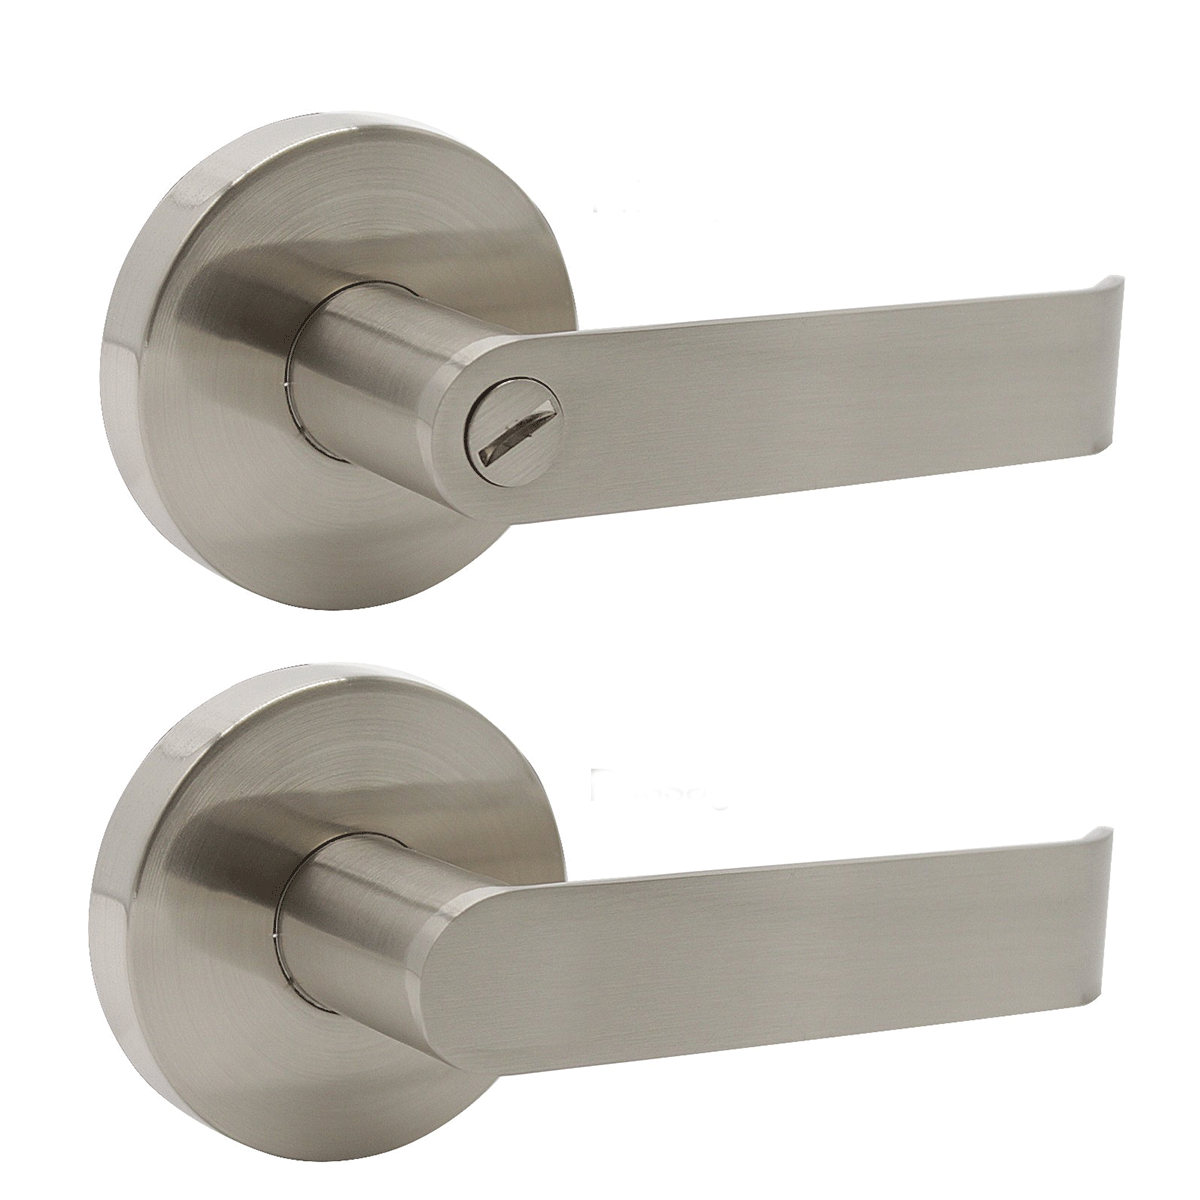 Fashion Heavy Duty Door Handles Brushed Nickel Privacy/Passage Door Lock Levers